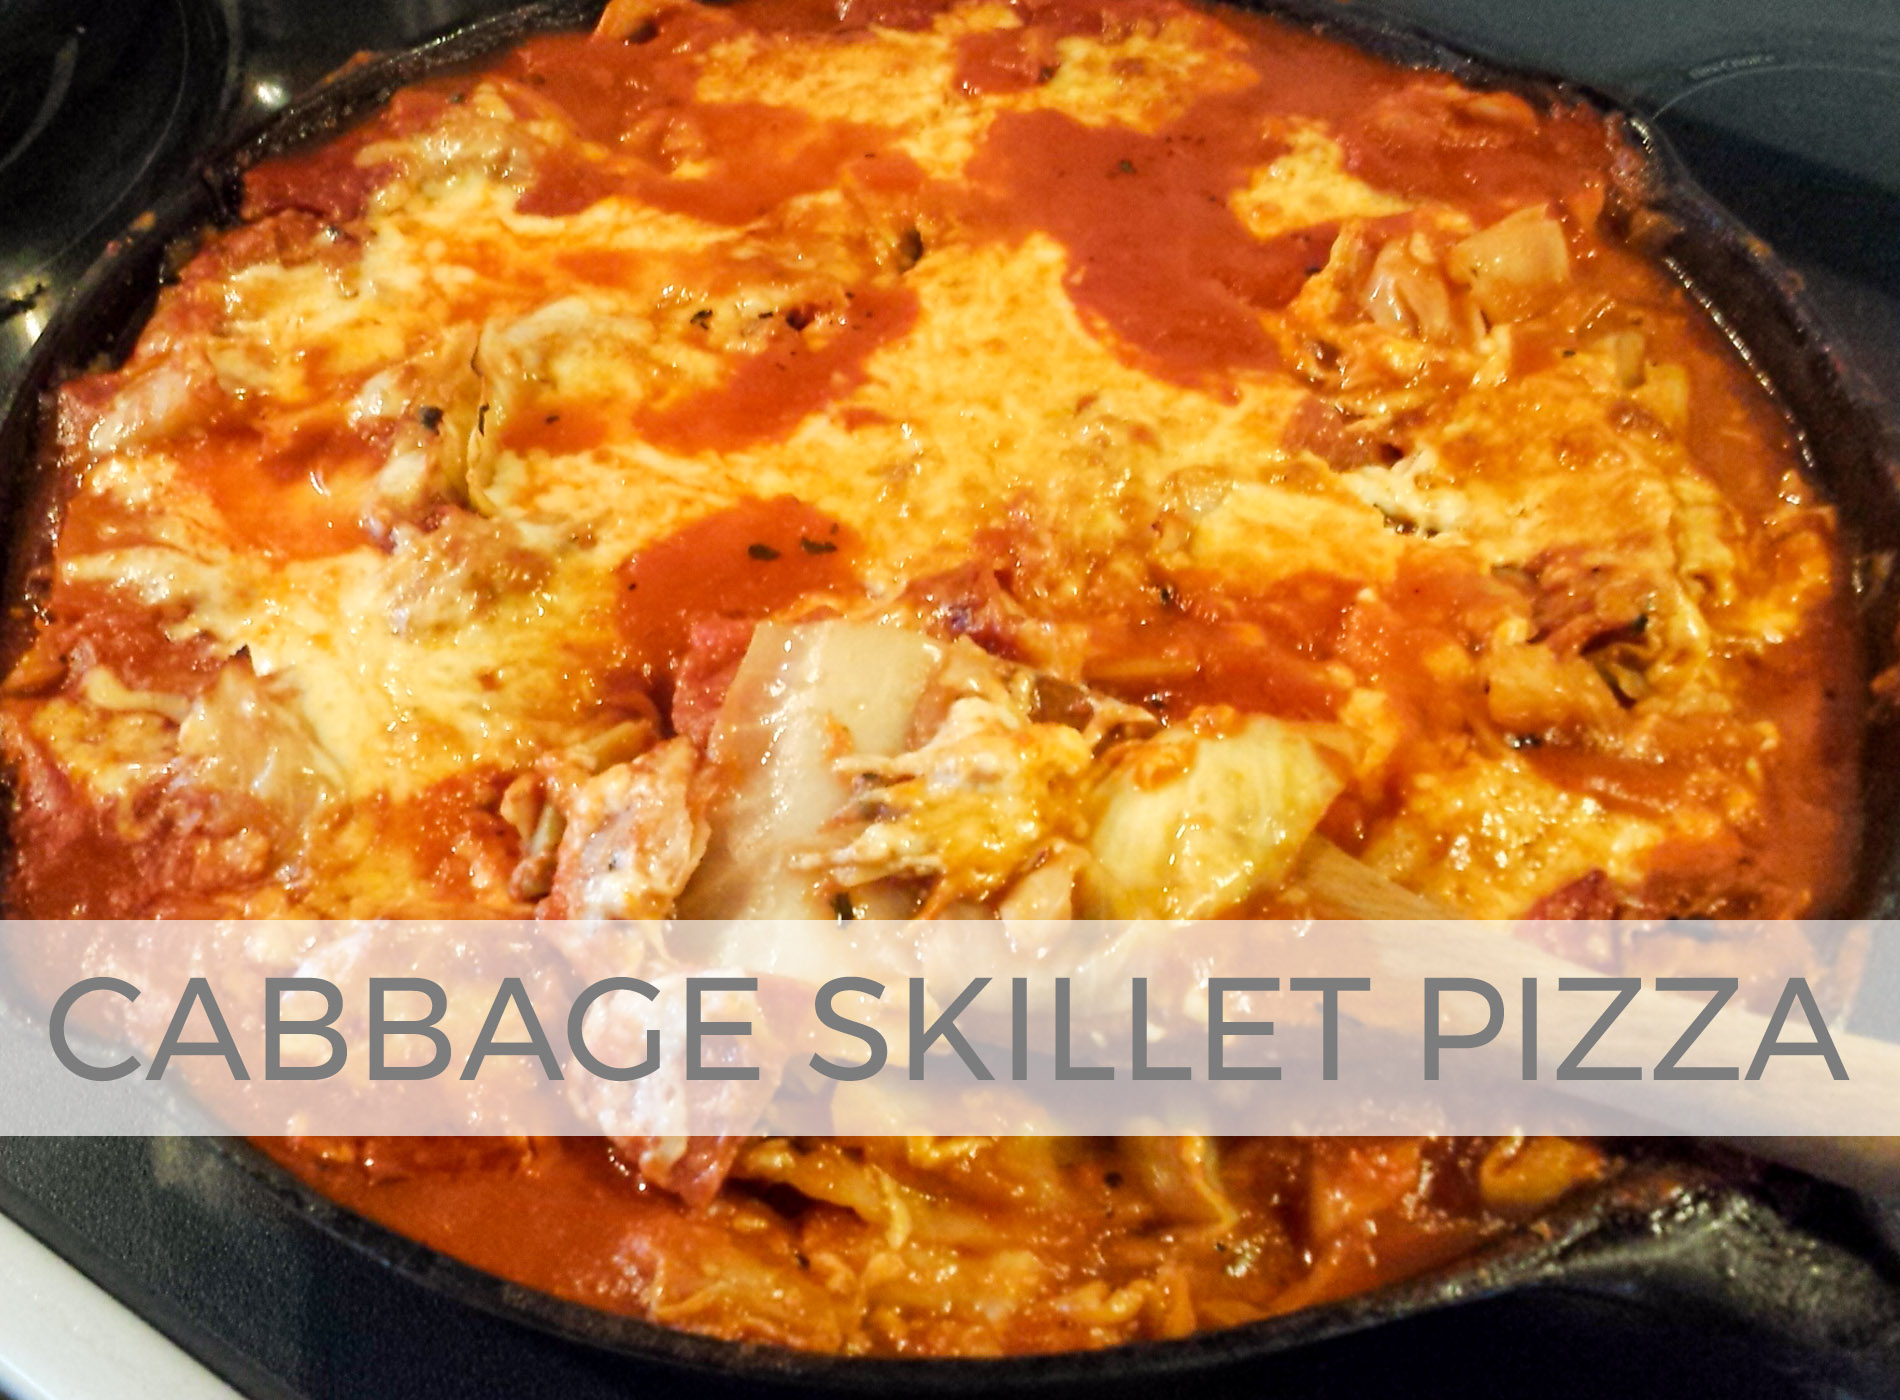 Cabbage Skillet Pizza Lasagna by Larissa of Prodigal Pieces | prodigalpieces.com